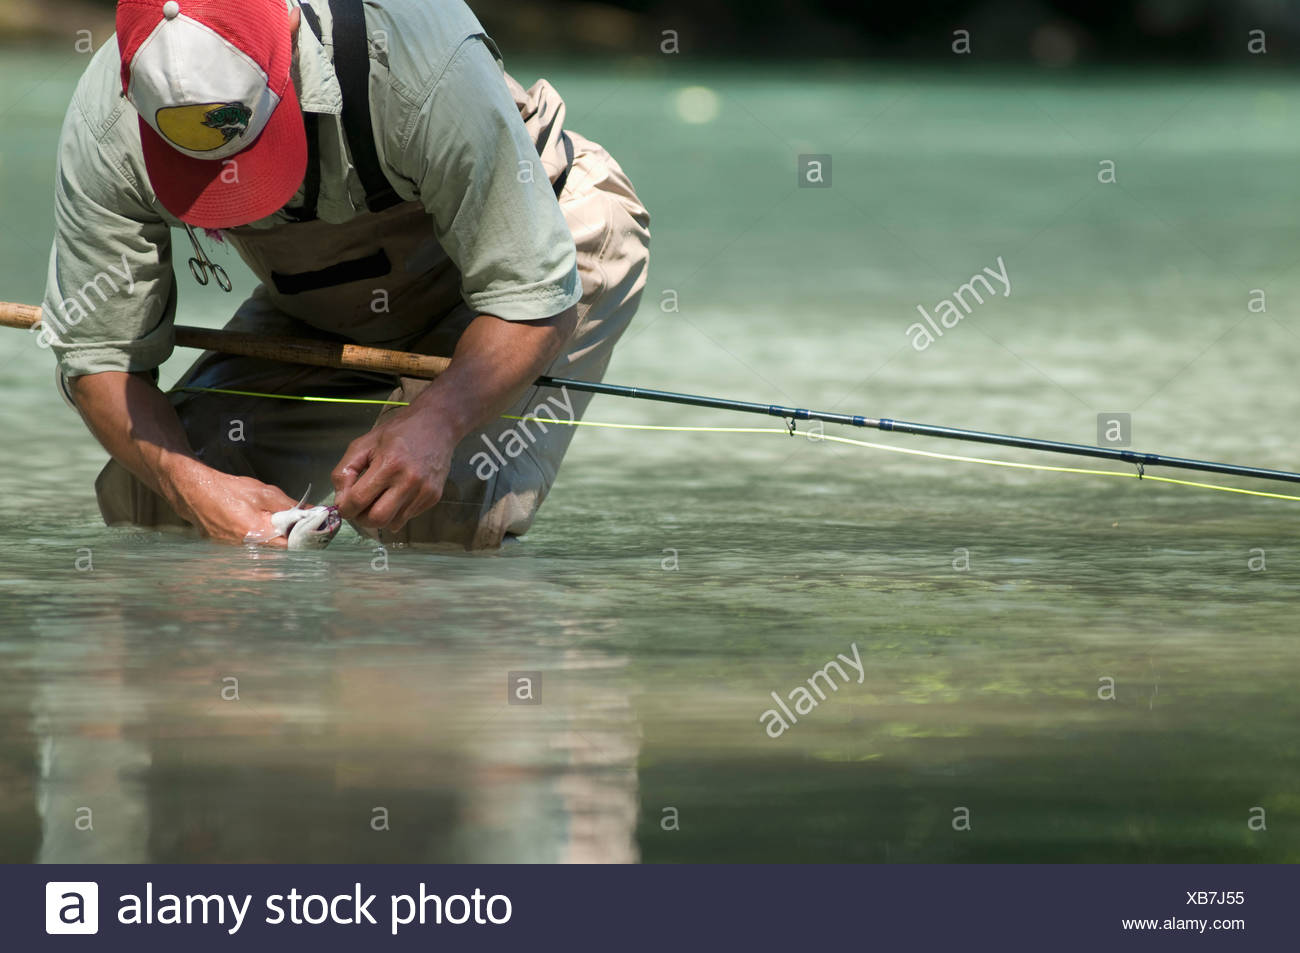 A man takes off the hook from a fish he caught while fly fishing in Squamish, British, Columbia. - Stock Image